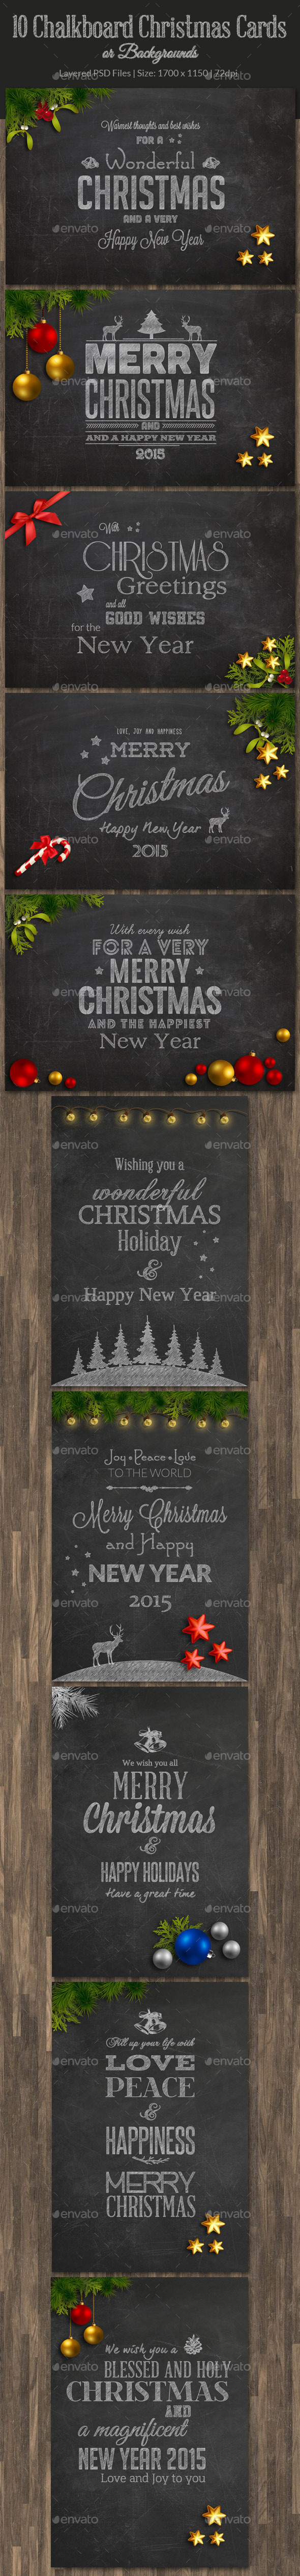 10 Christmas Chalkboard Cards